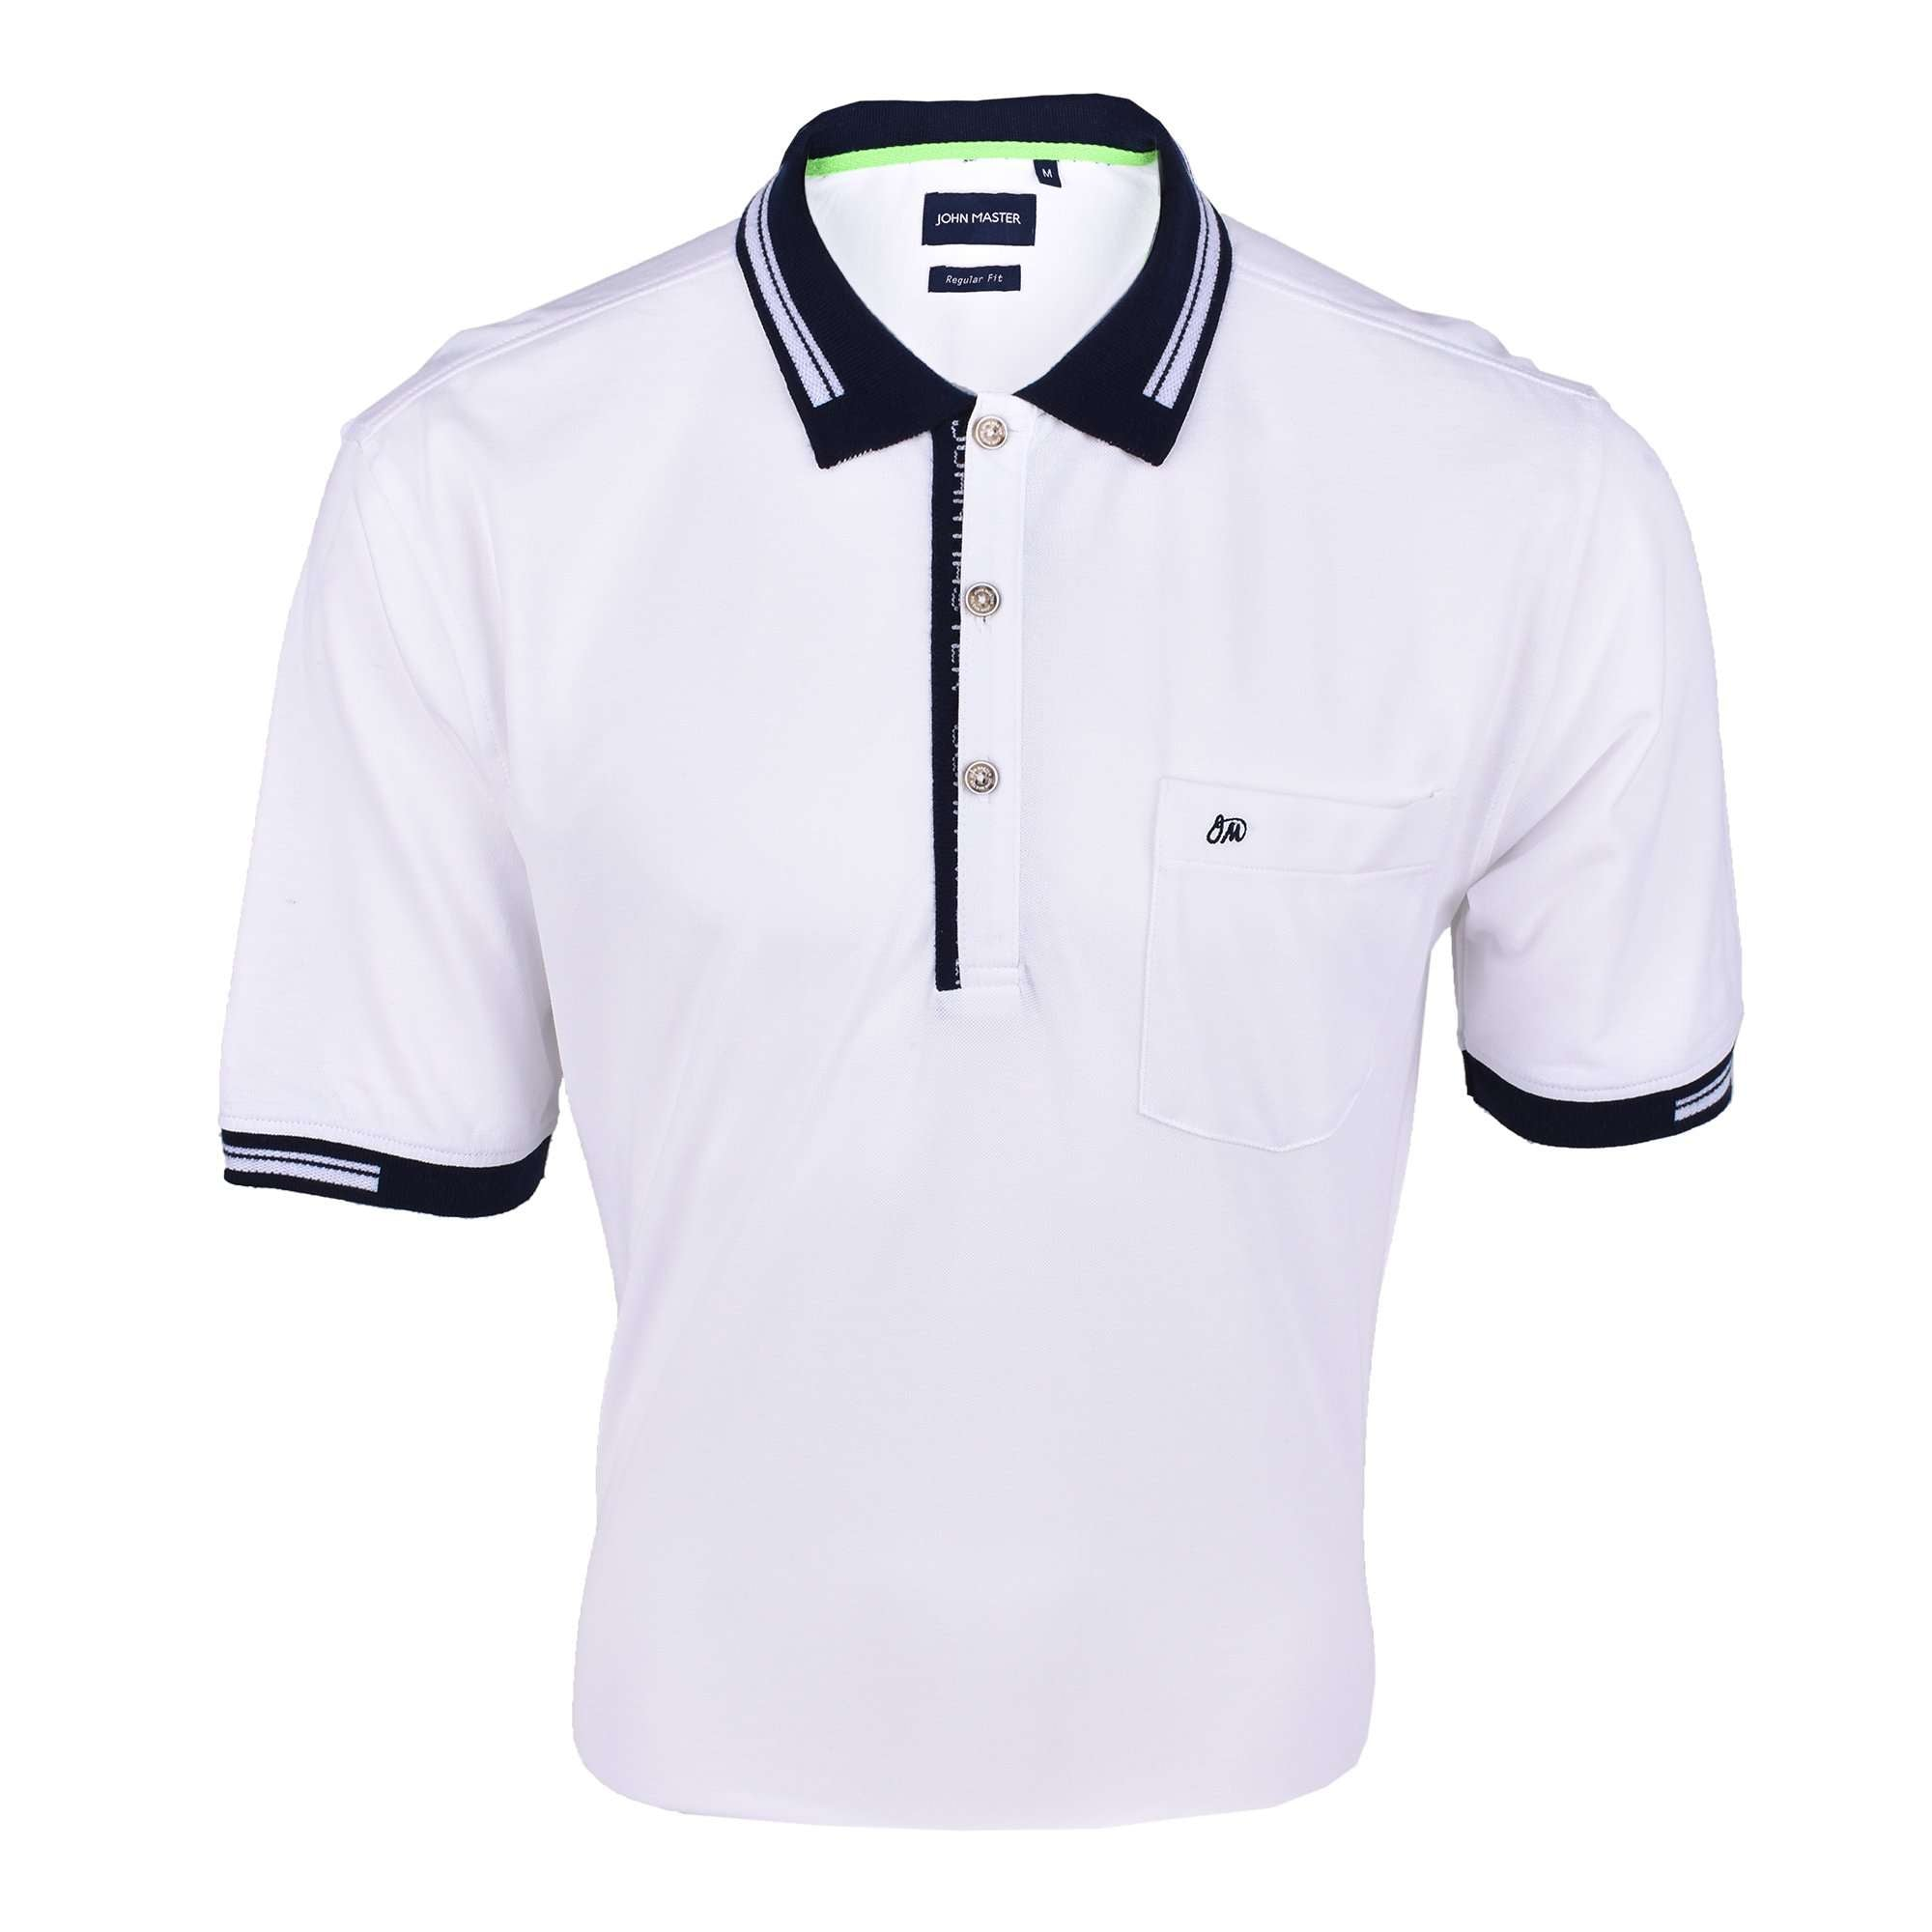 John Master Men Casual Regular Fit Polo Tee White 8008003-AO : Buy John Master online at CMG.MY